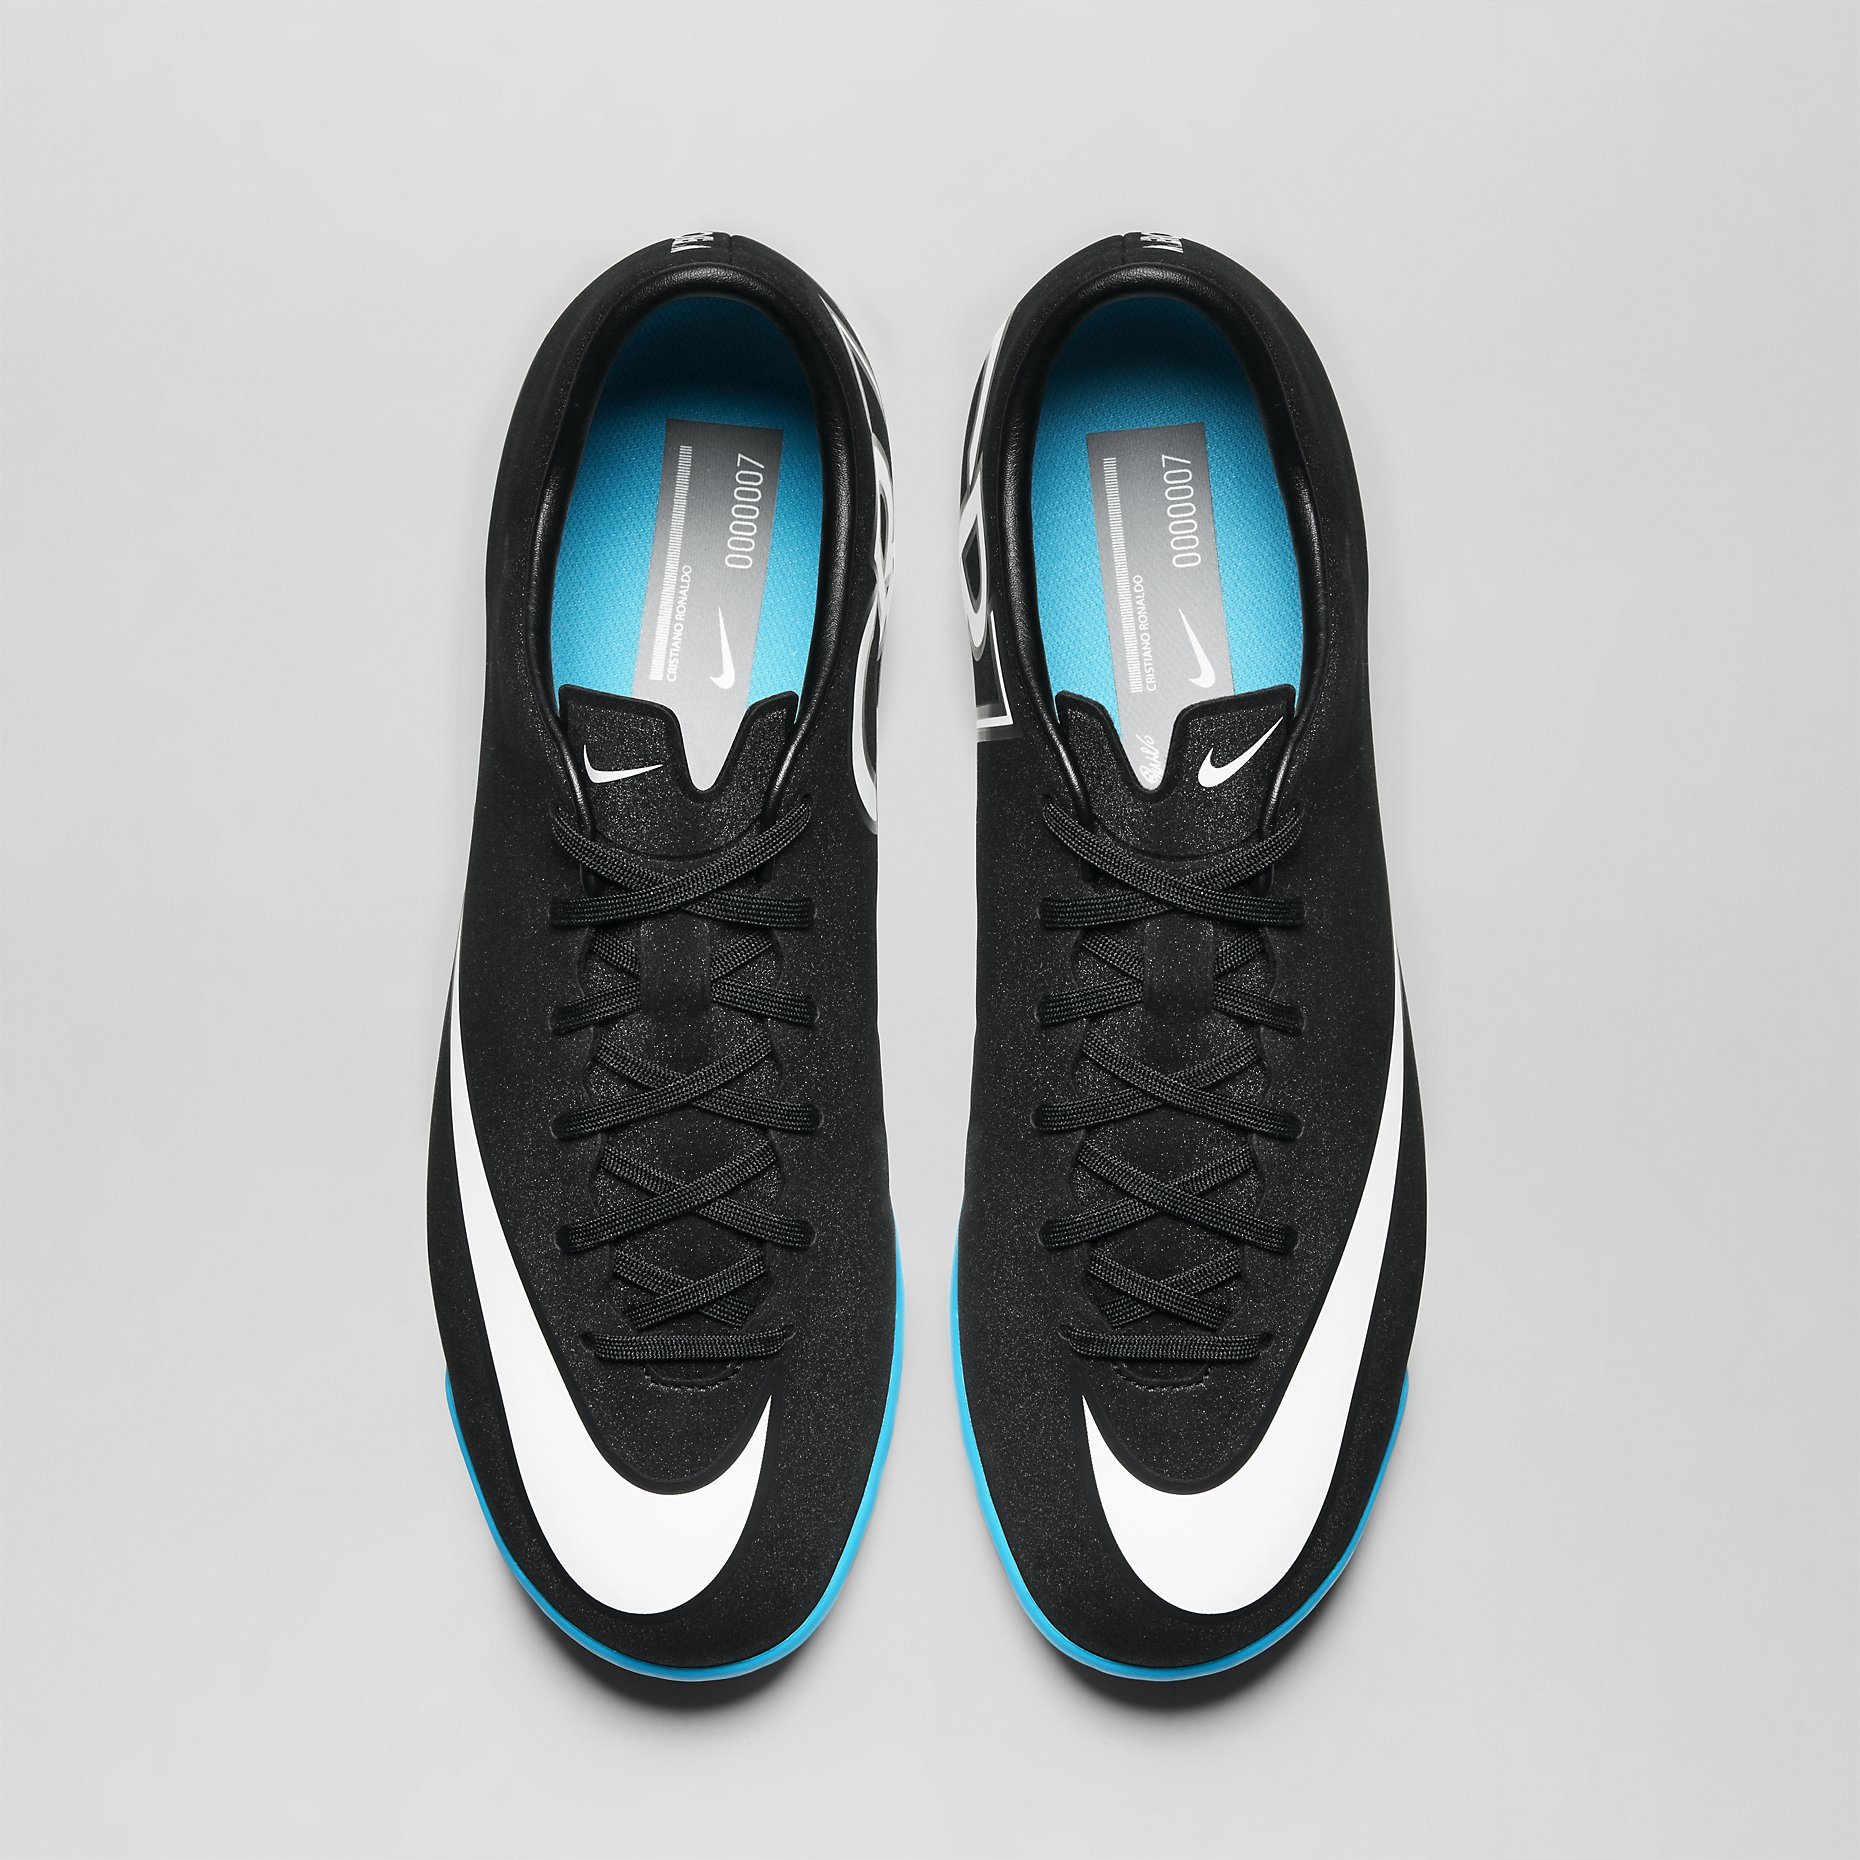 8ed6ba51811 ... black aliexpress click to enlarge image nike mercurial victory v ic cr7  38692 4a743 ...